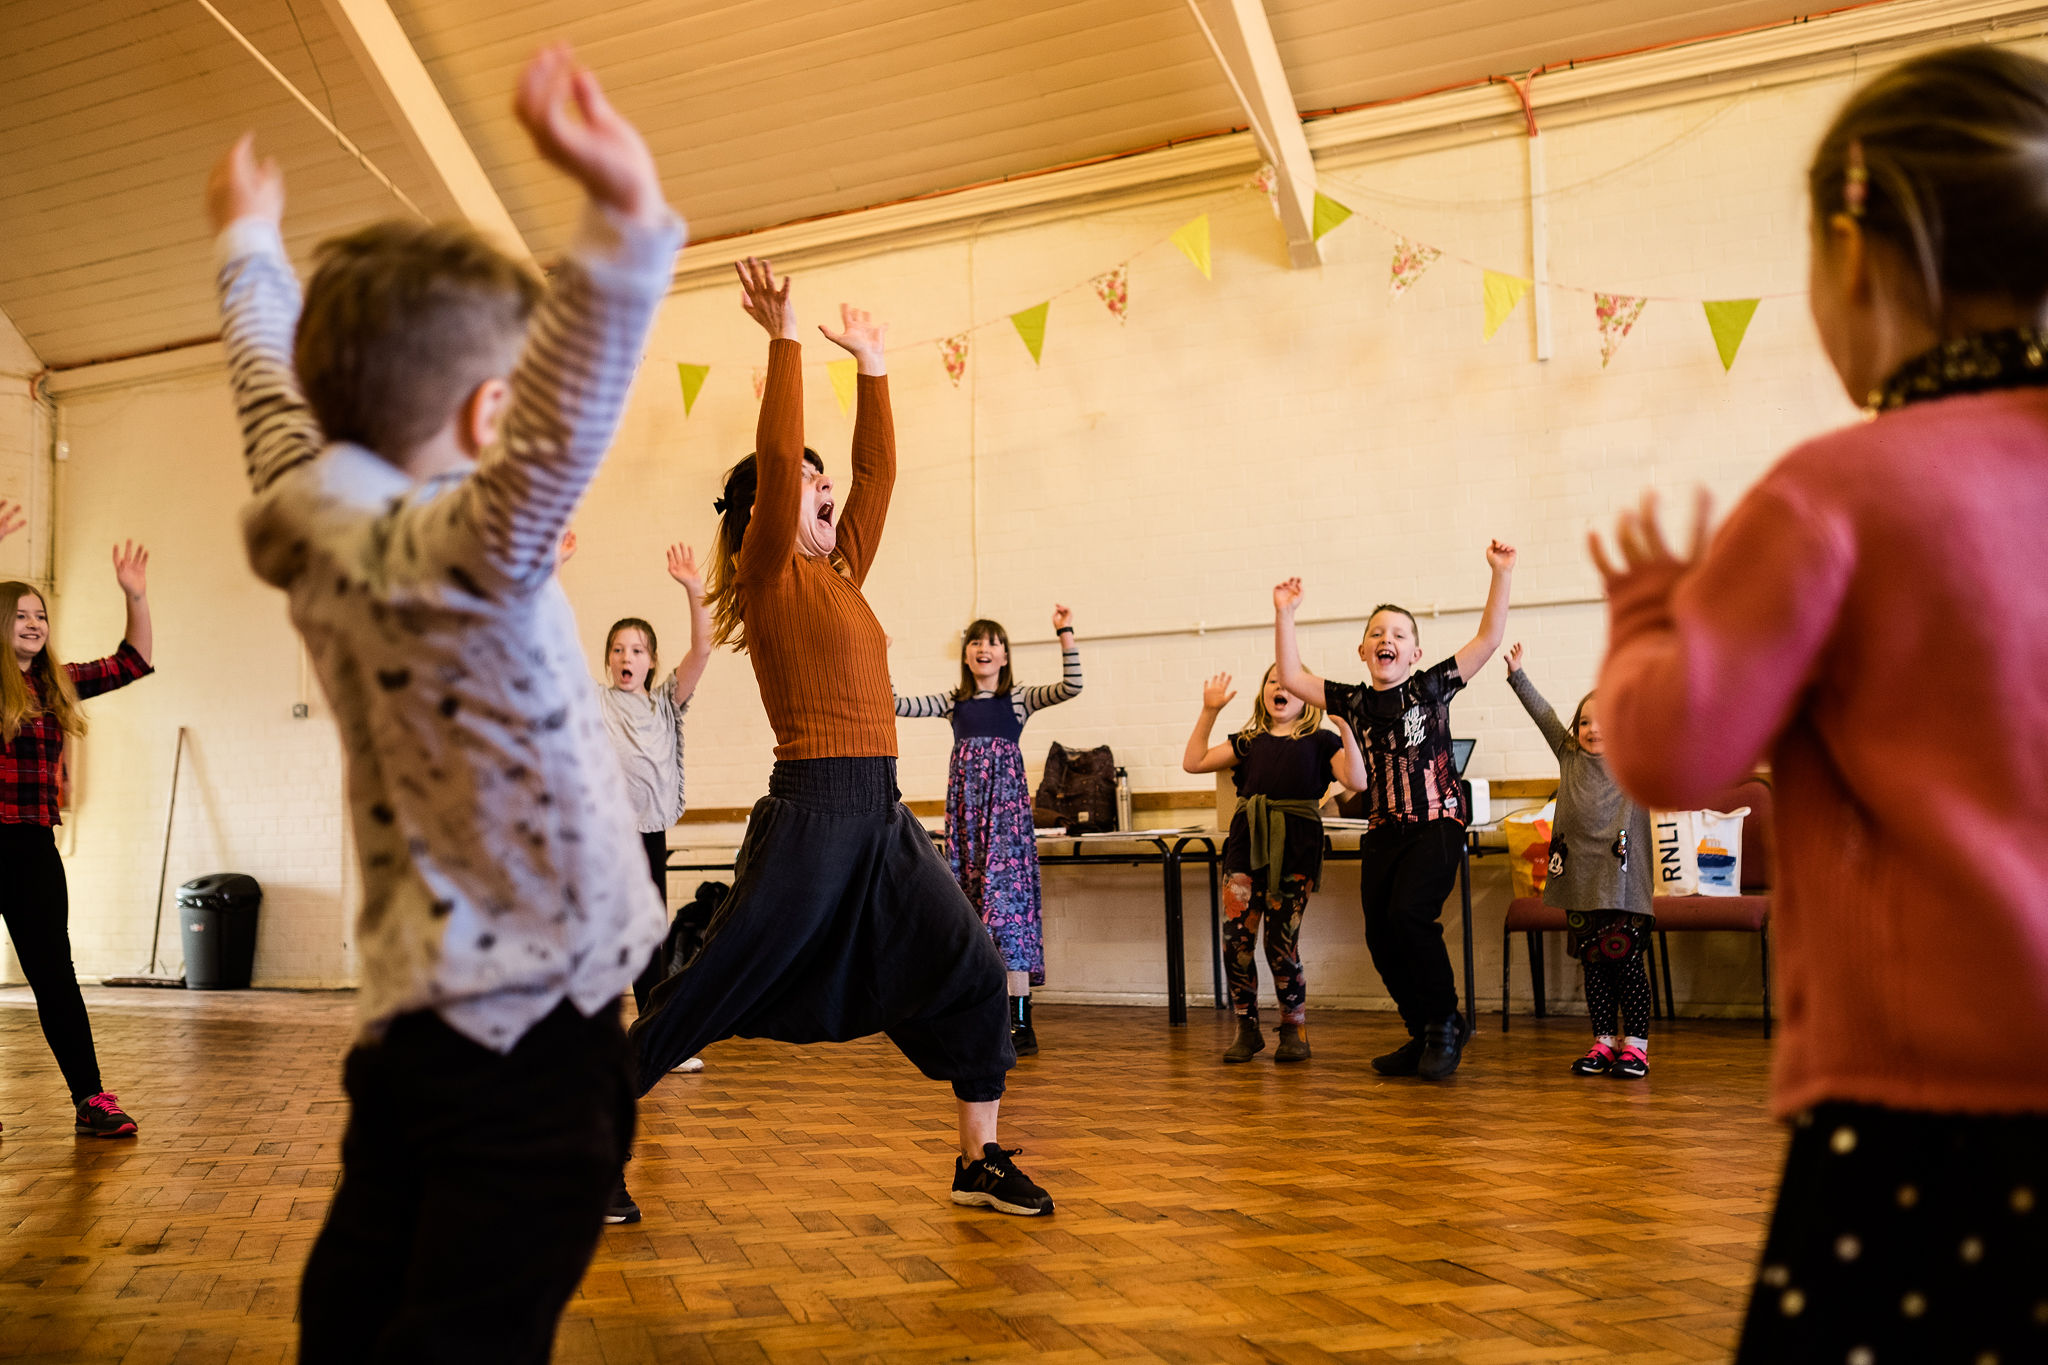 2019.02.09RestokeSmallFolkDanceSingingWorkshop-JennyHarper-11.jpg